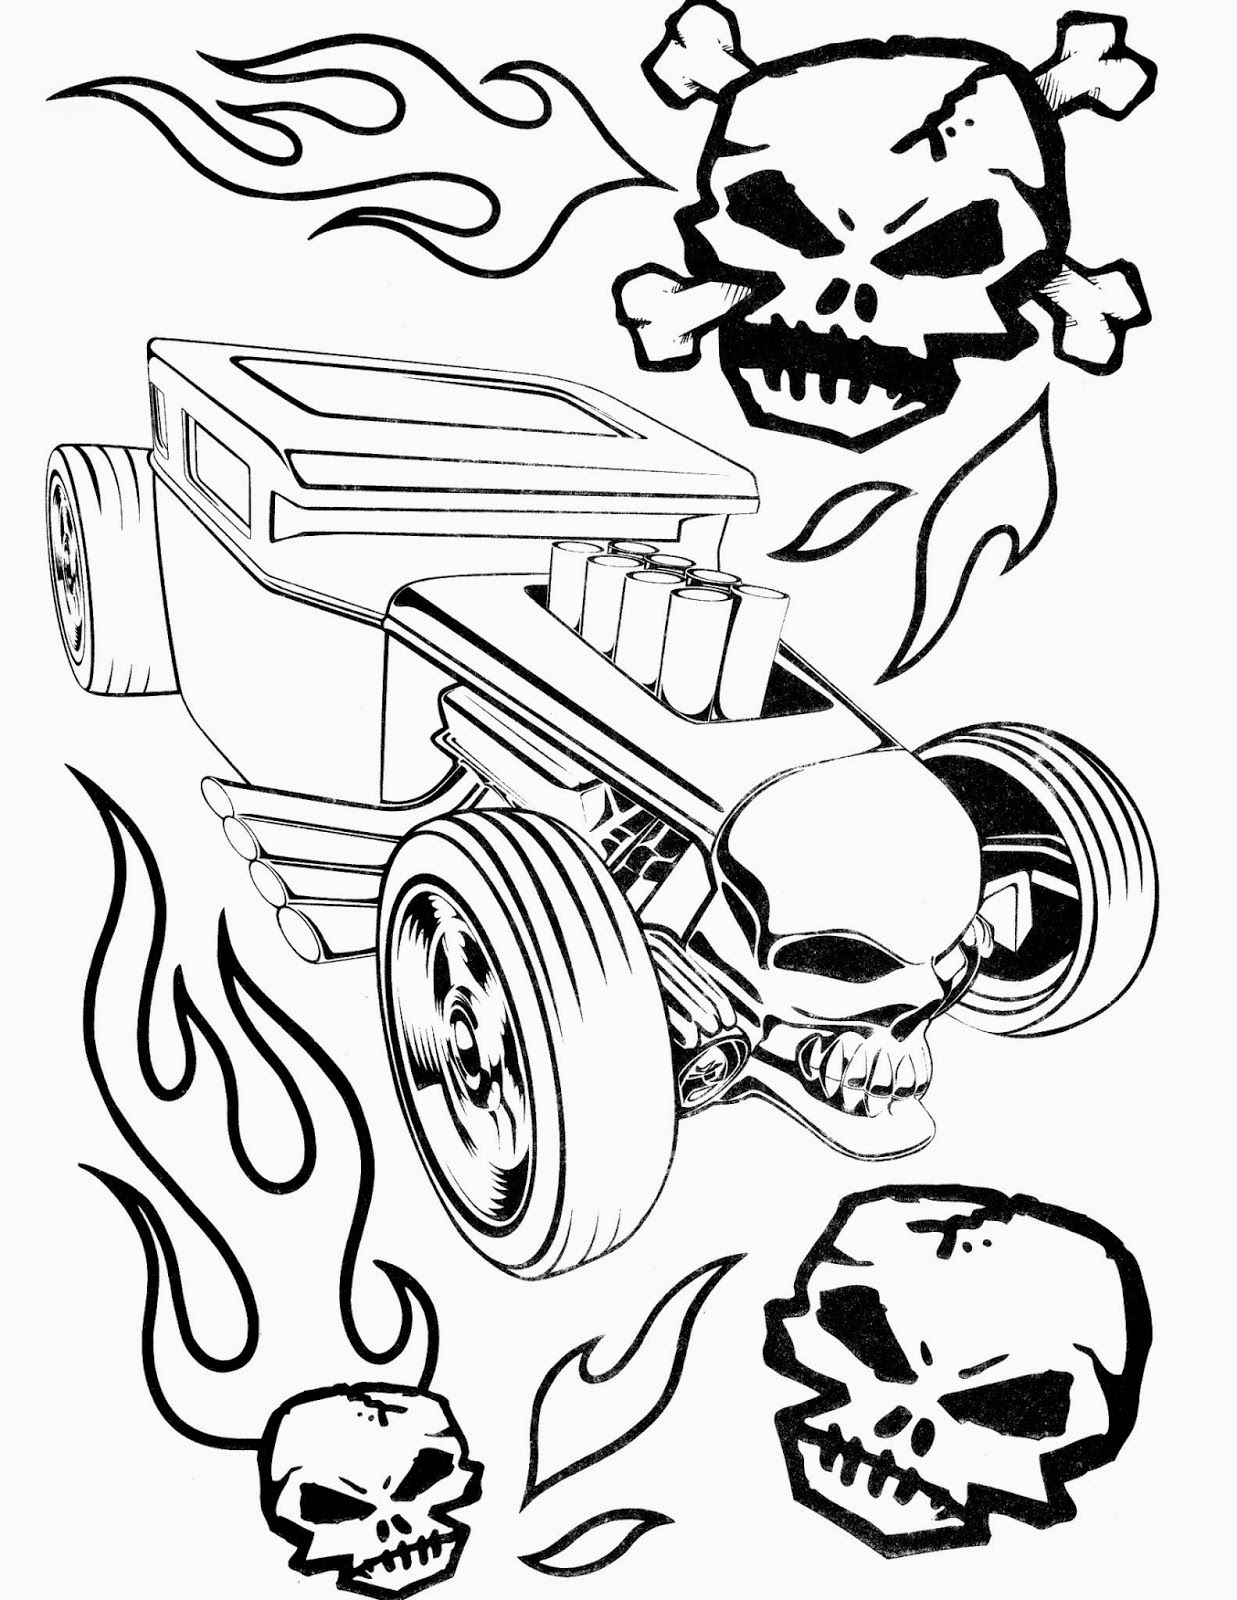 hot wheels images to print free printable hot wheels coloring pages for kids print images wheels to hot